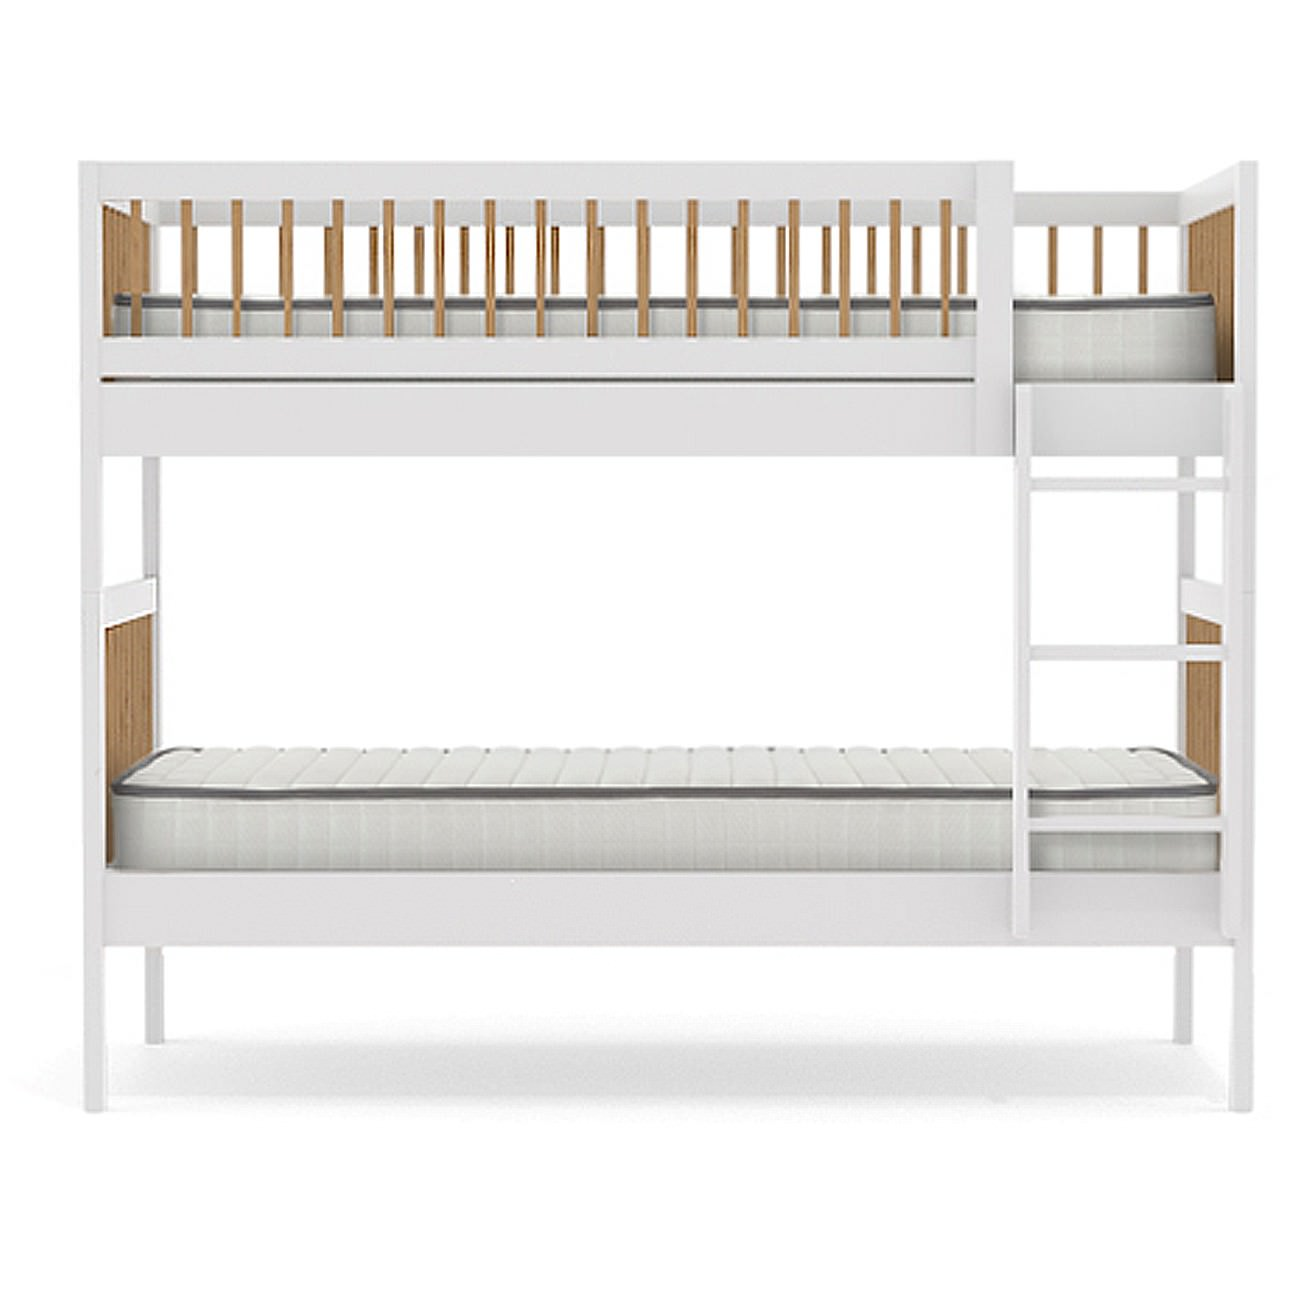 Nord Wooden Bunk Bed, Single